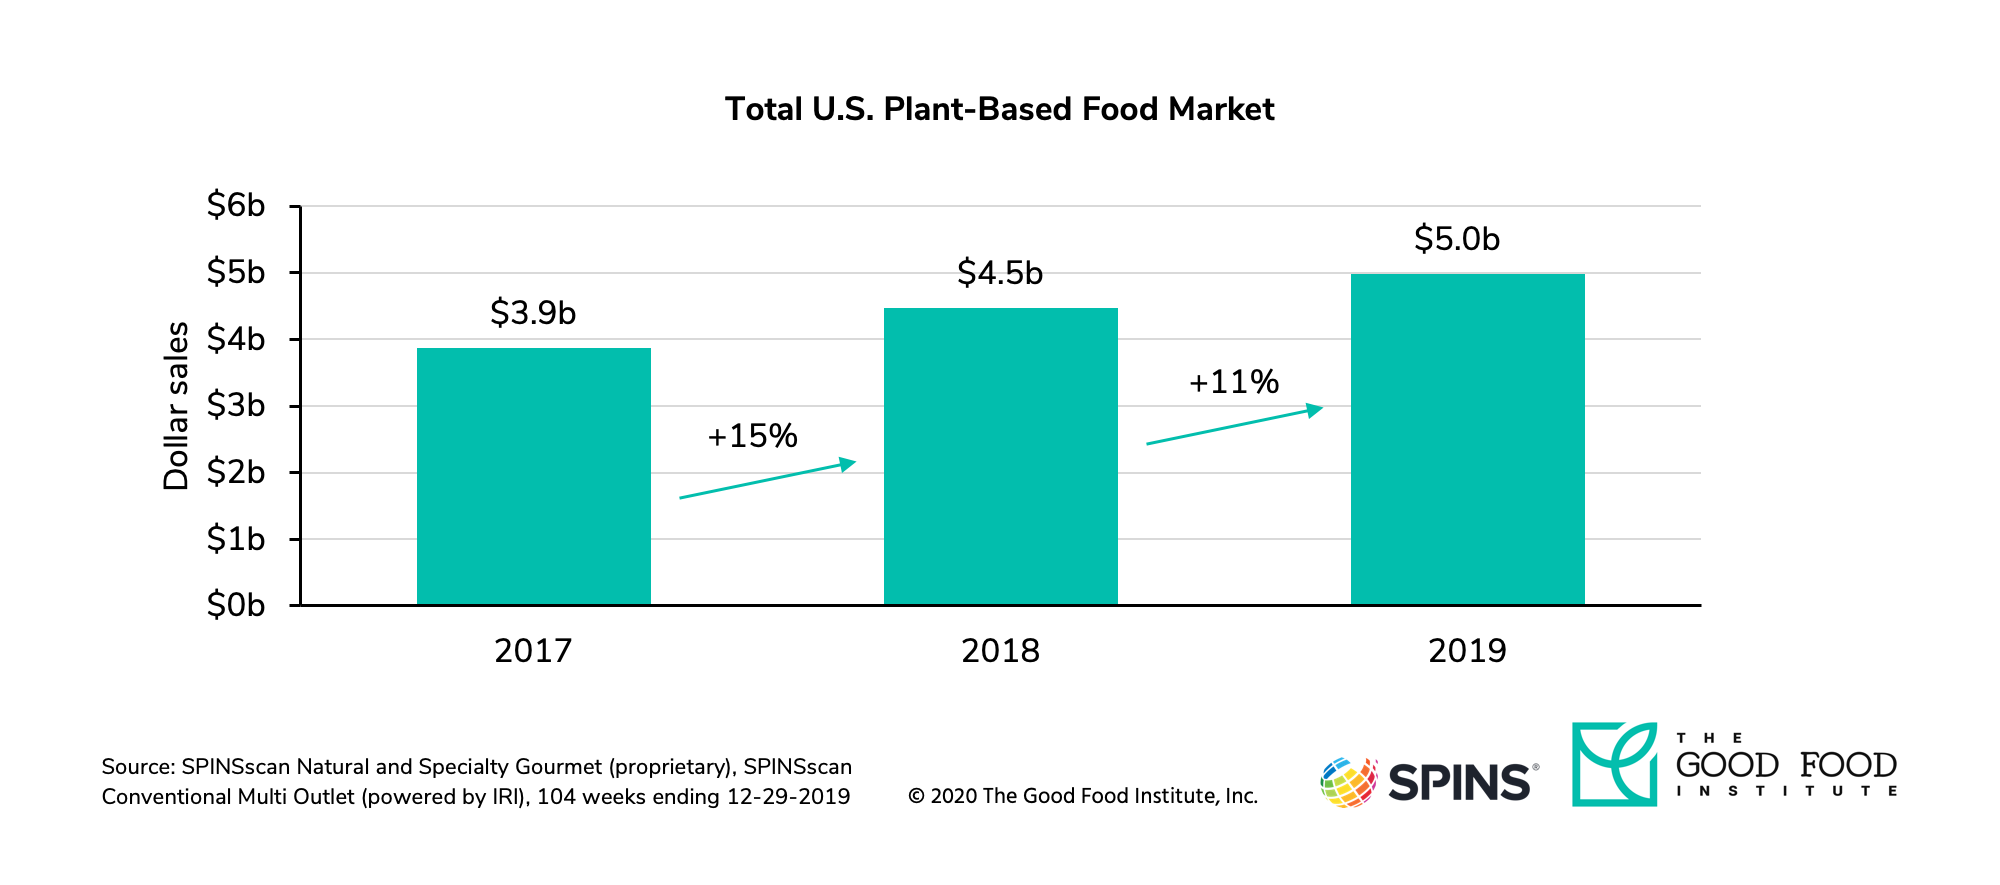 Plant-based market dollar sales in 2017, 2018, and 2019.